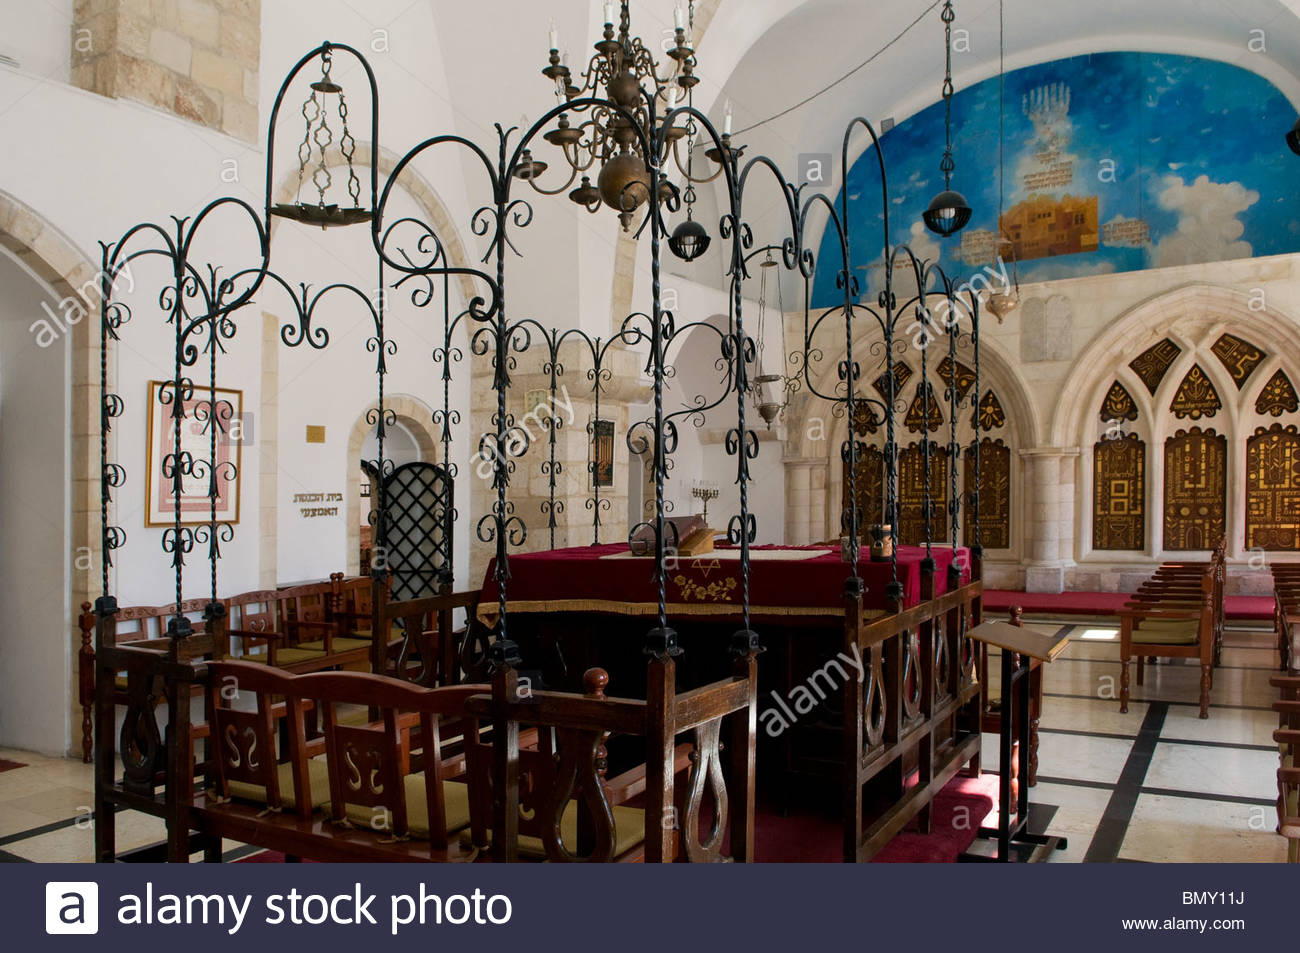 Románský biskupský palace Moravia, Synagogue In Old Jewish Quarter Stock Photos & Synagogue In Old ...